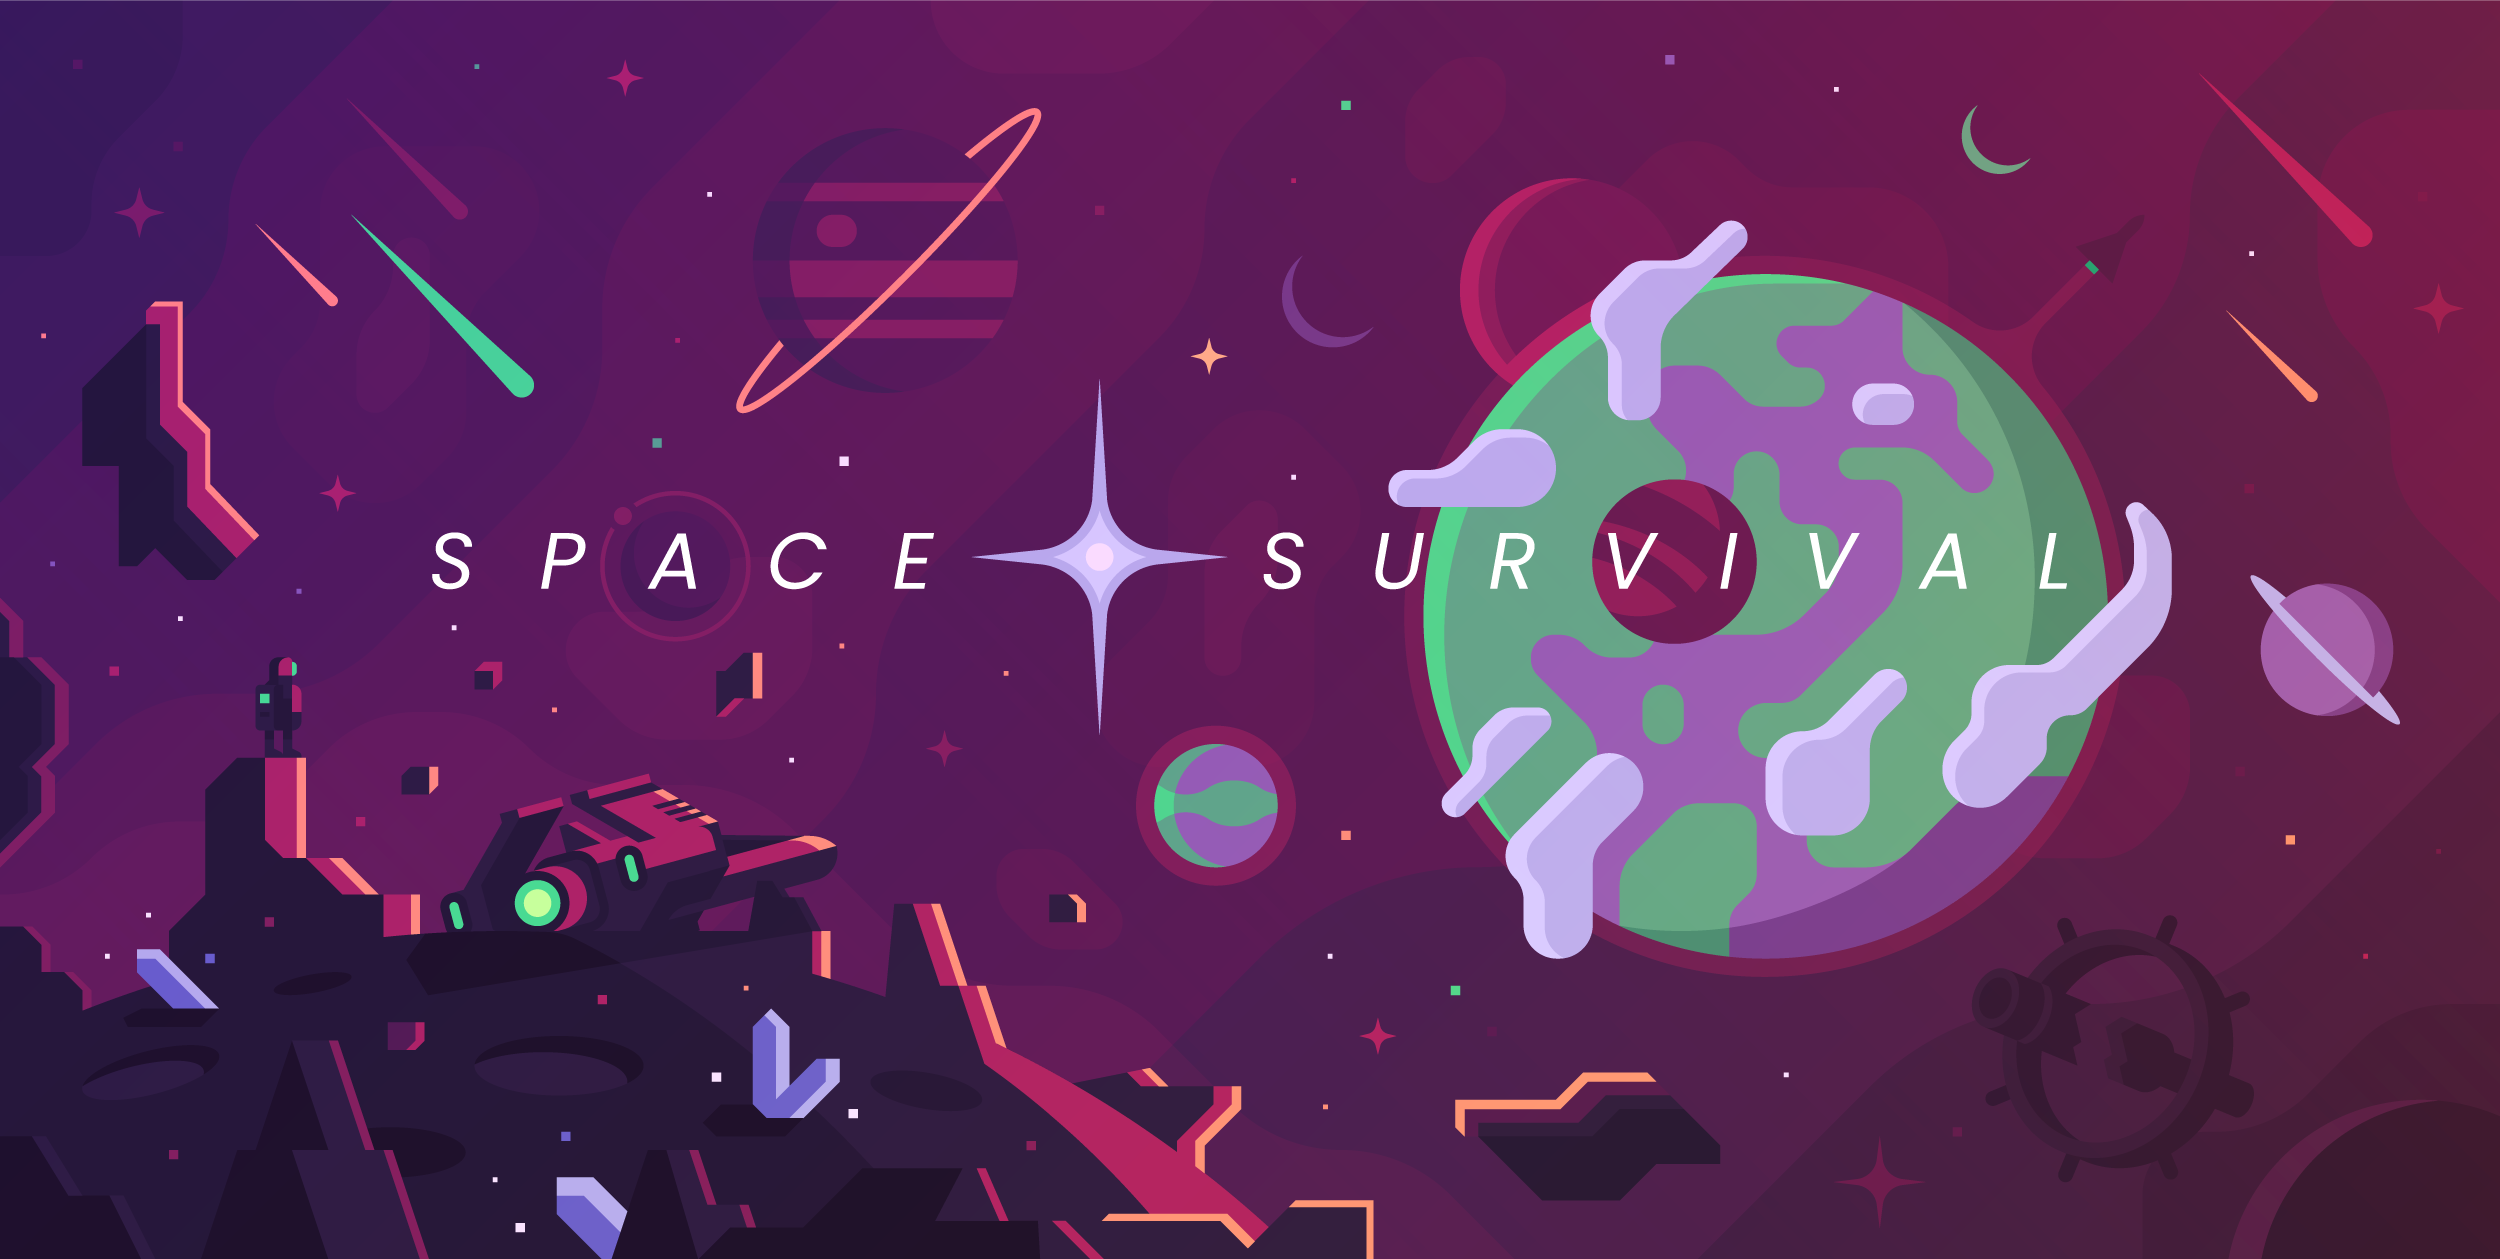 Dots space game concept art by Canopy Design and Illustration